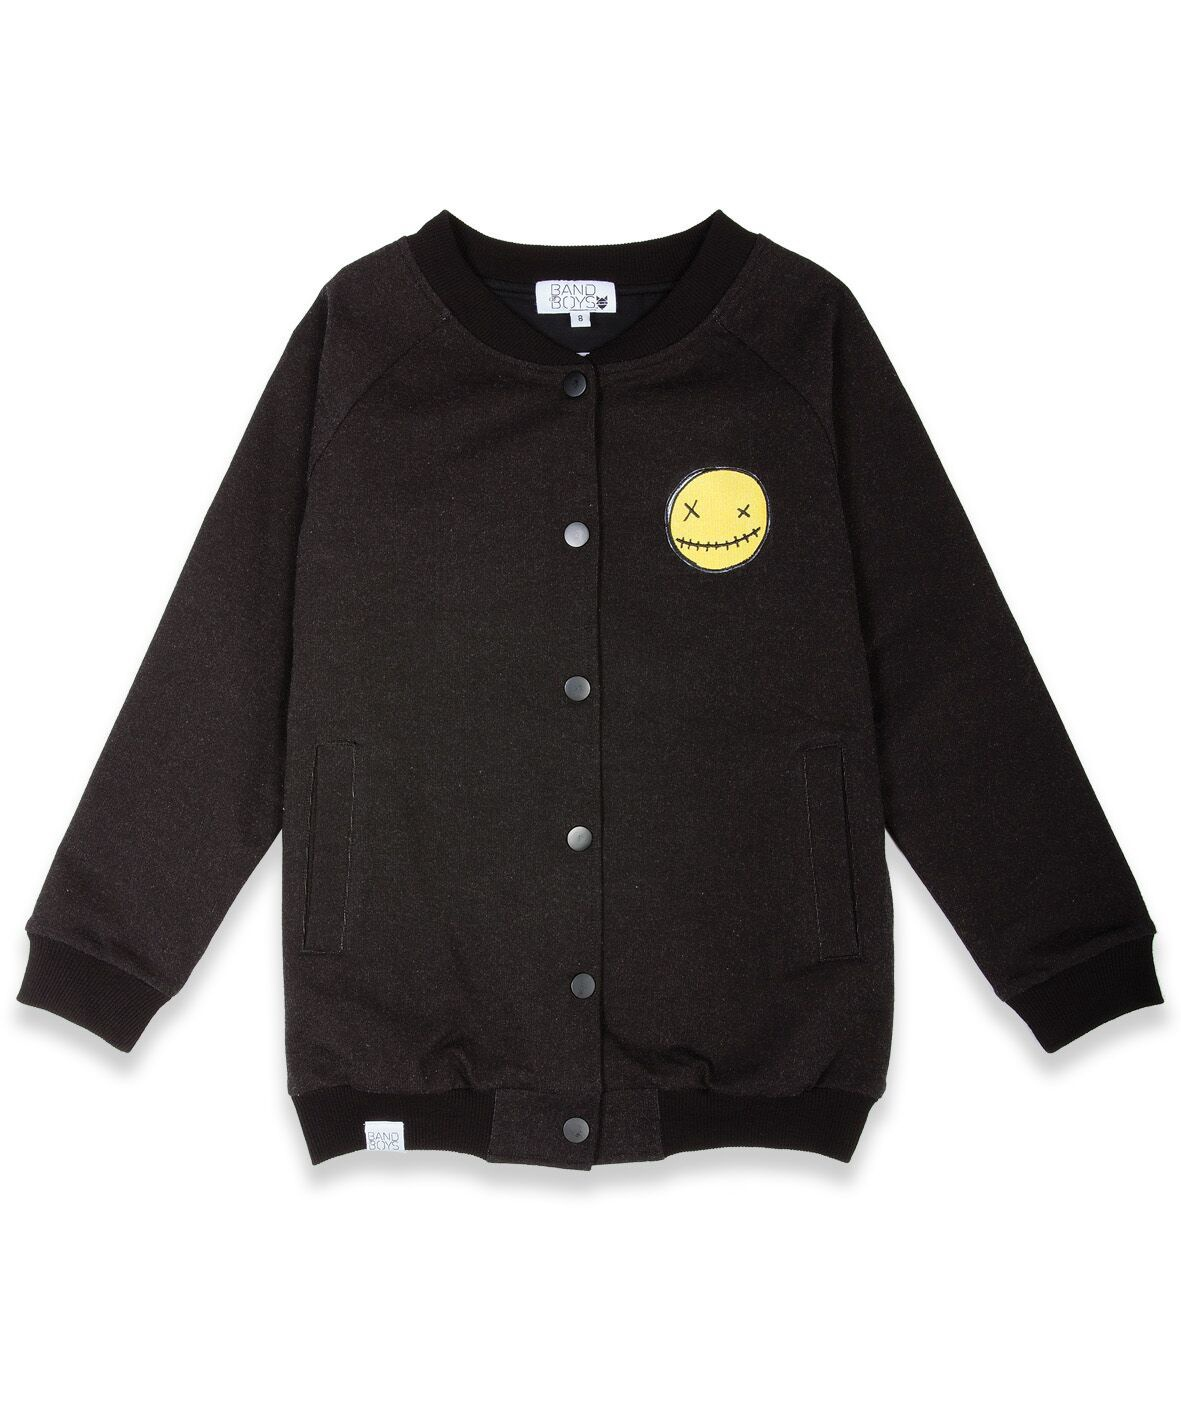 BOB Jacket Bomber Smiley Patch Black